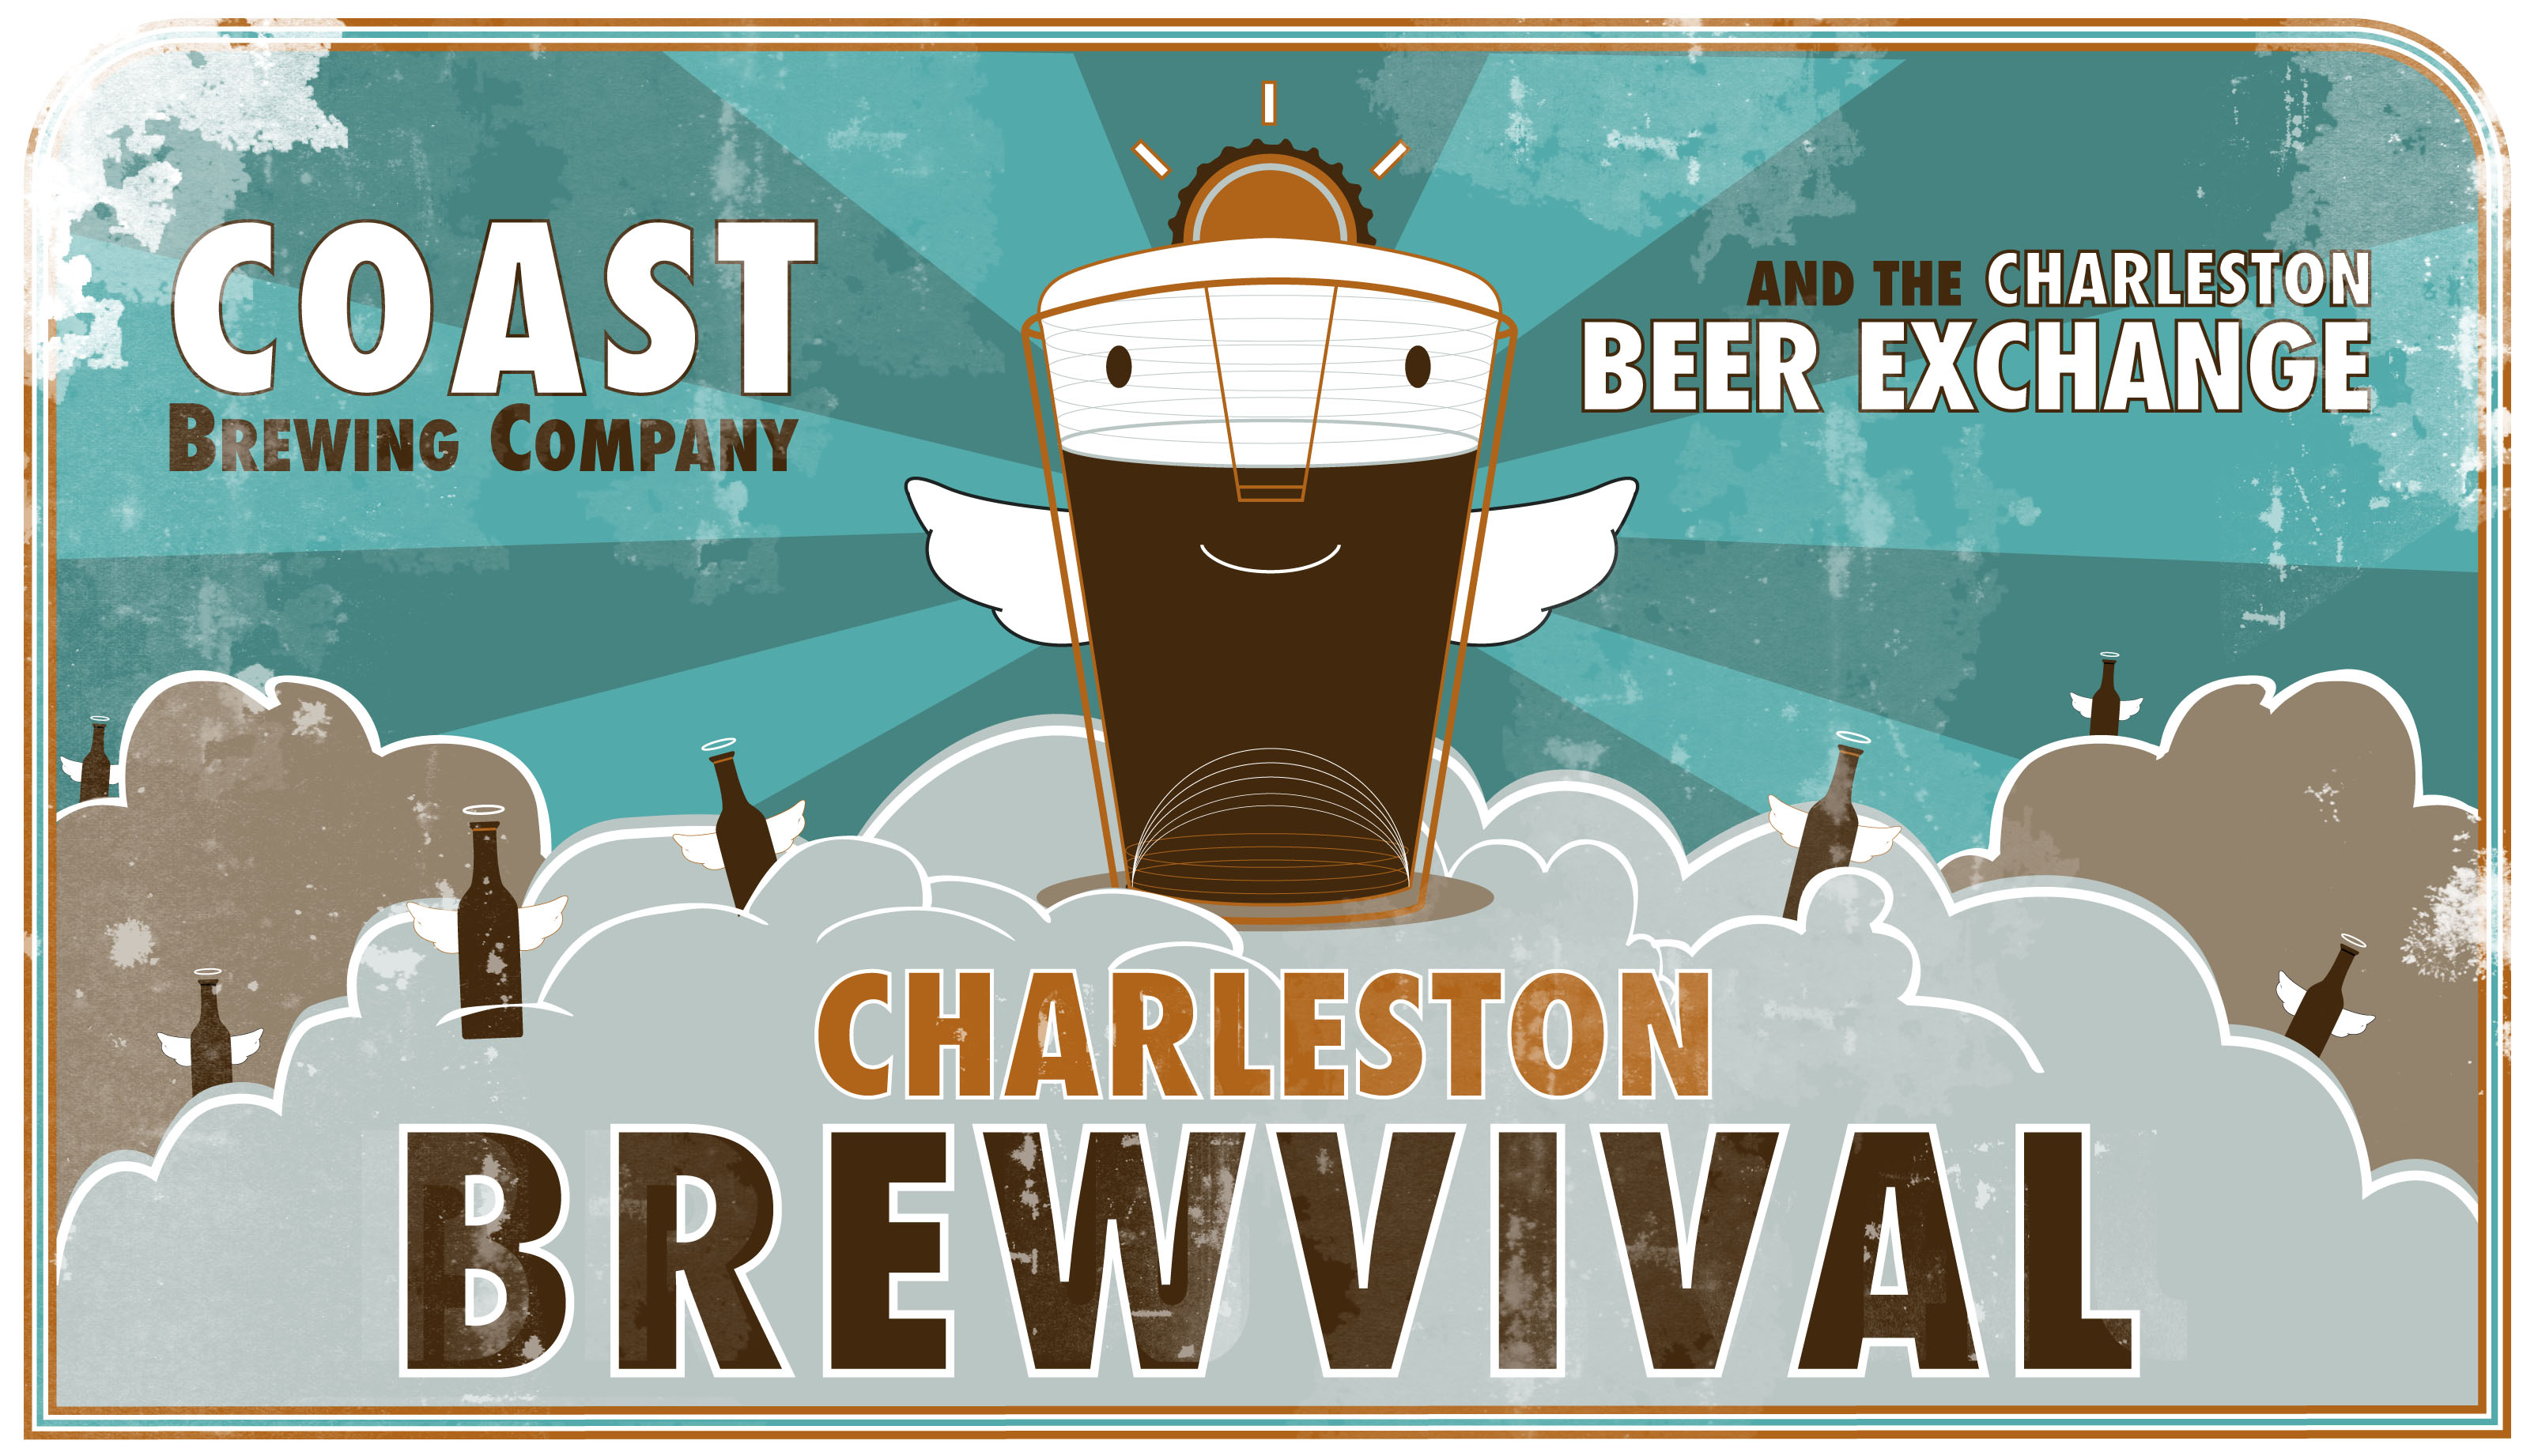 The Brewvival Festival is coming to Charleston in February